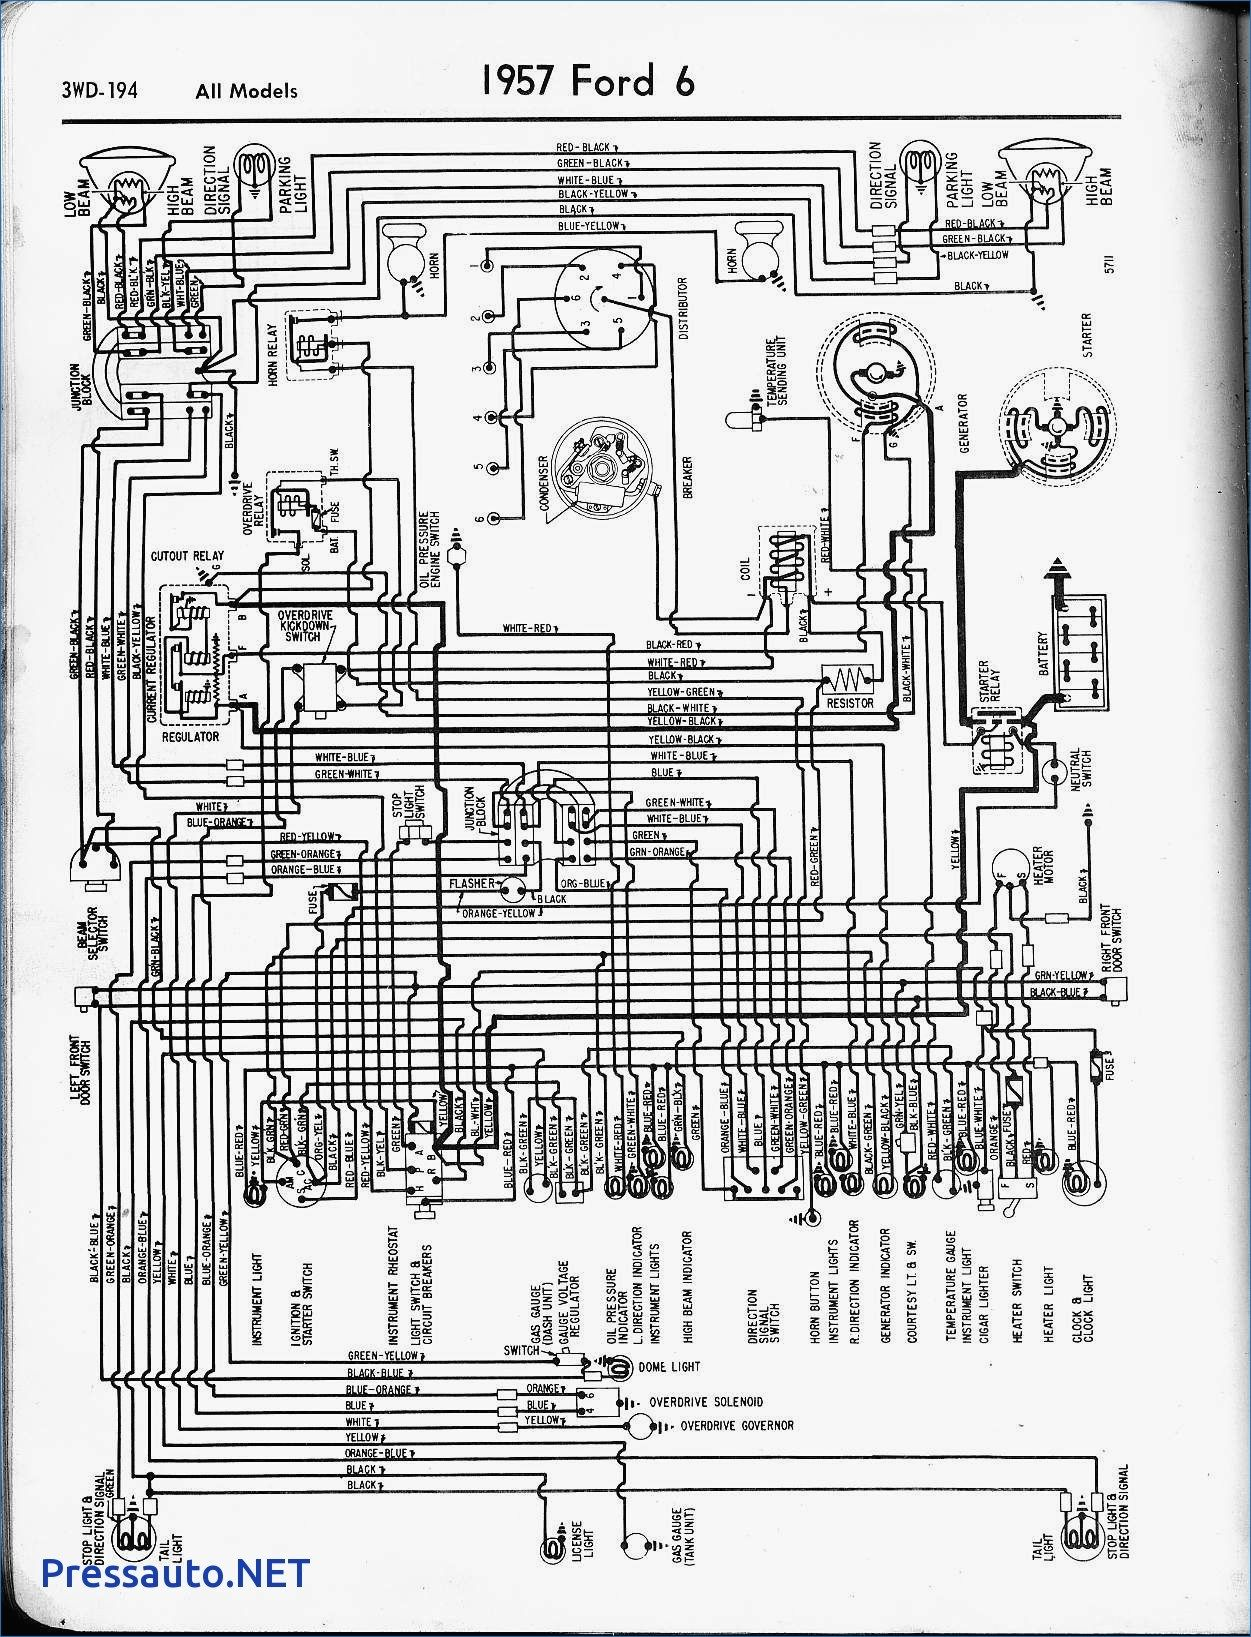 hight resolution of wiring diagram for peugeot 307 wiring diagram go peugeot 307 cc radio wiring diagram peugeot 307